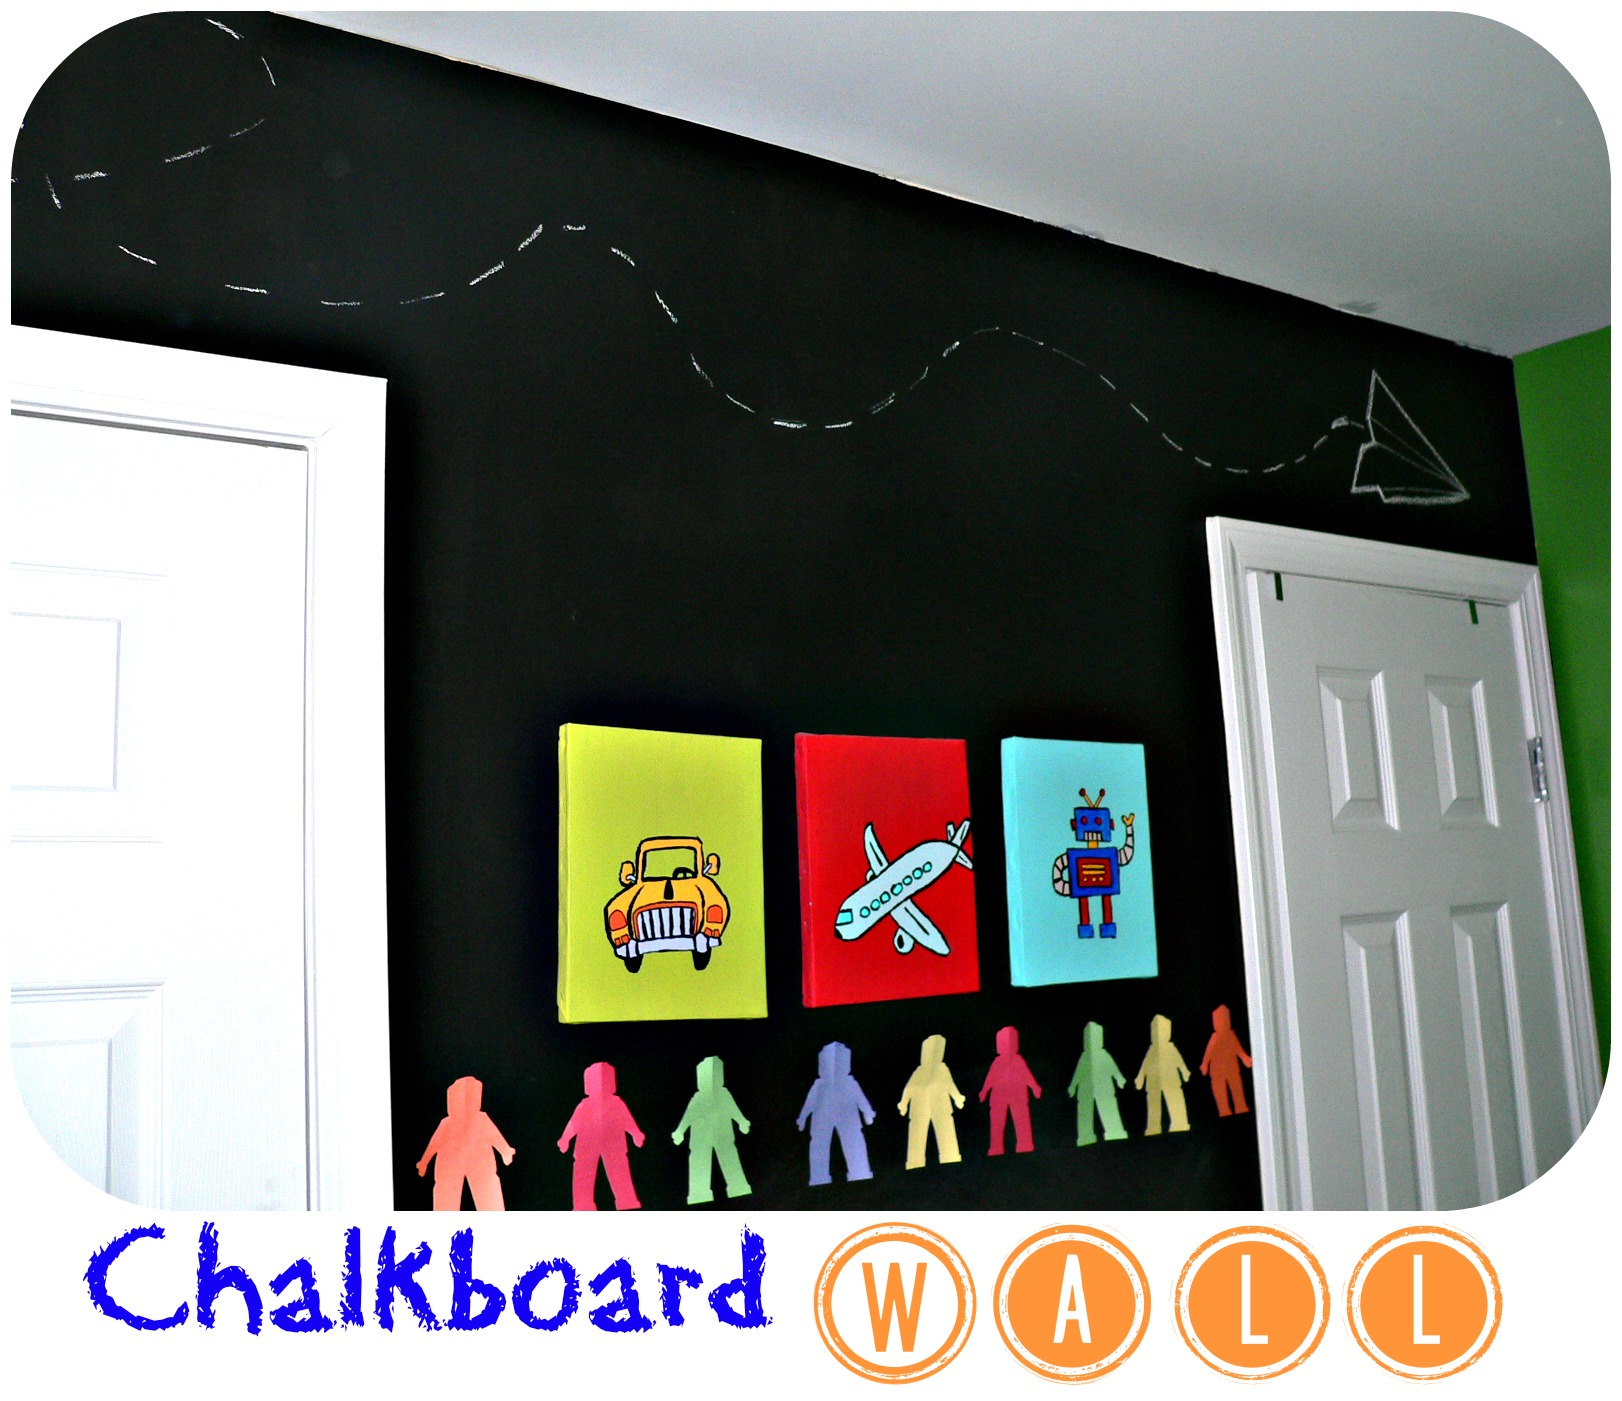 Bedroom Chalkboard Wall | 2 Little Supeheroes2 Little Supeheroes